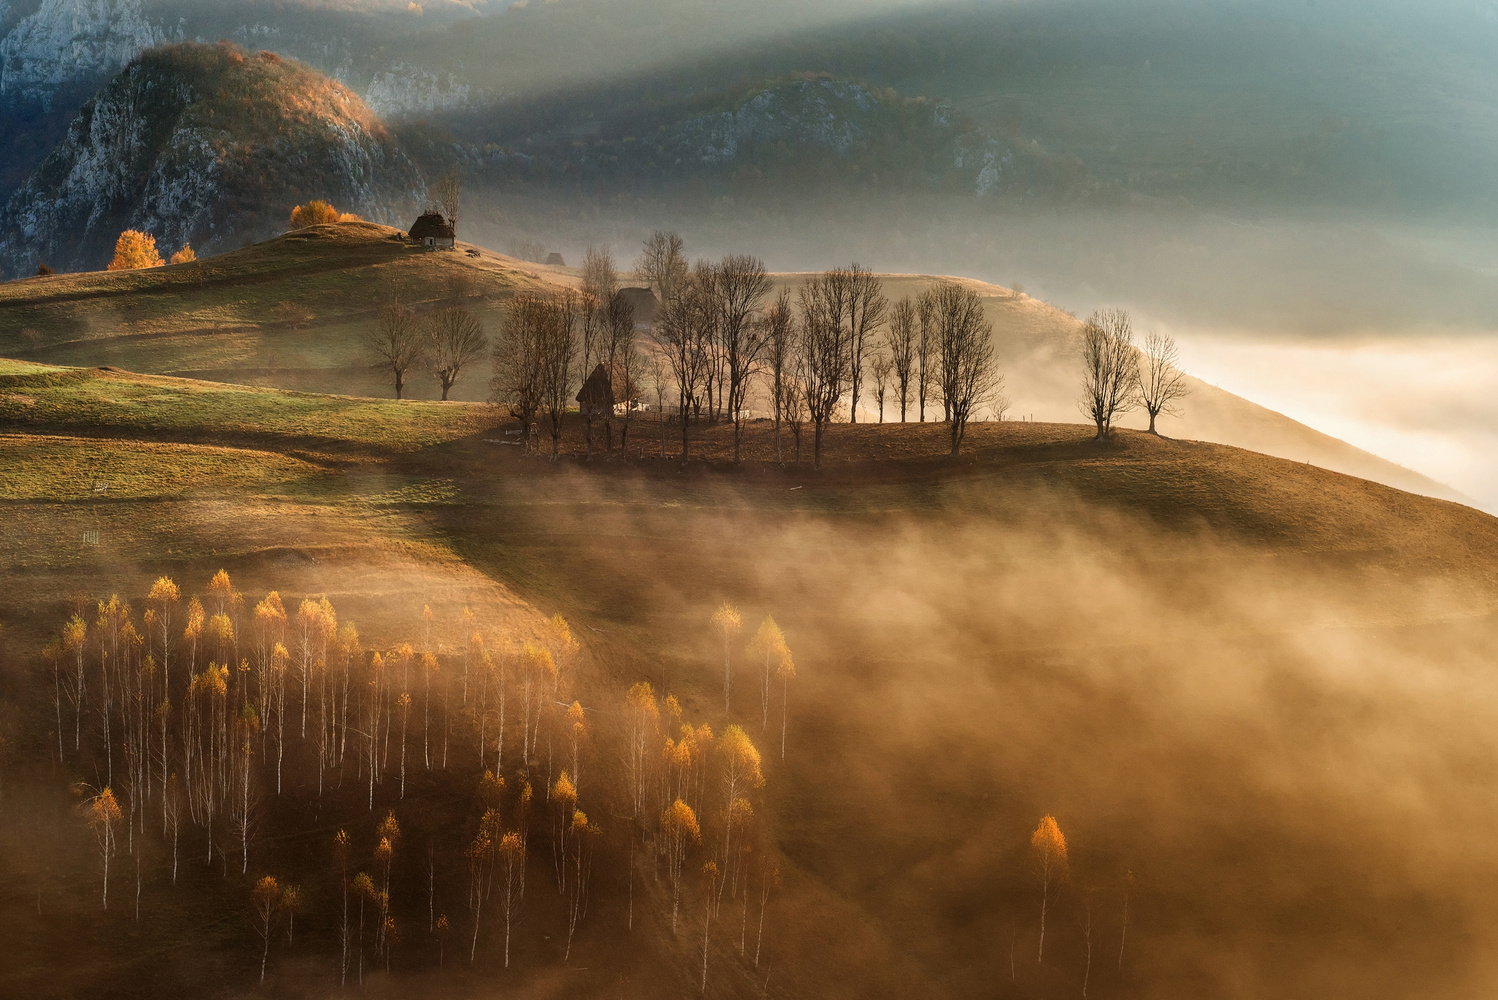 Sunrise over the hills by Alex Robciuc